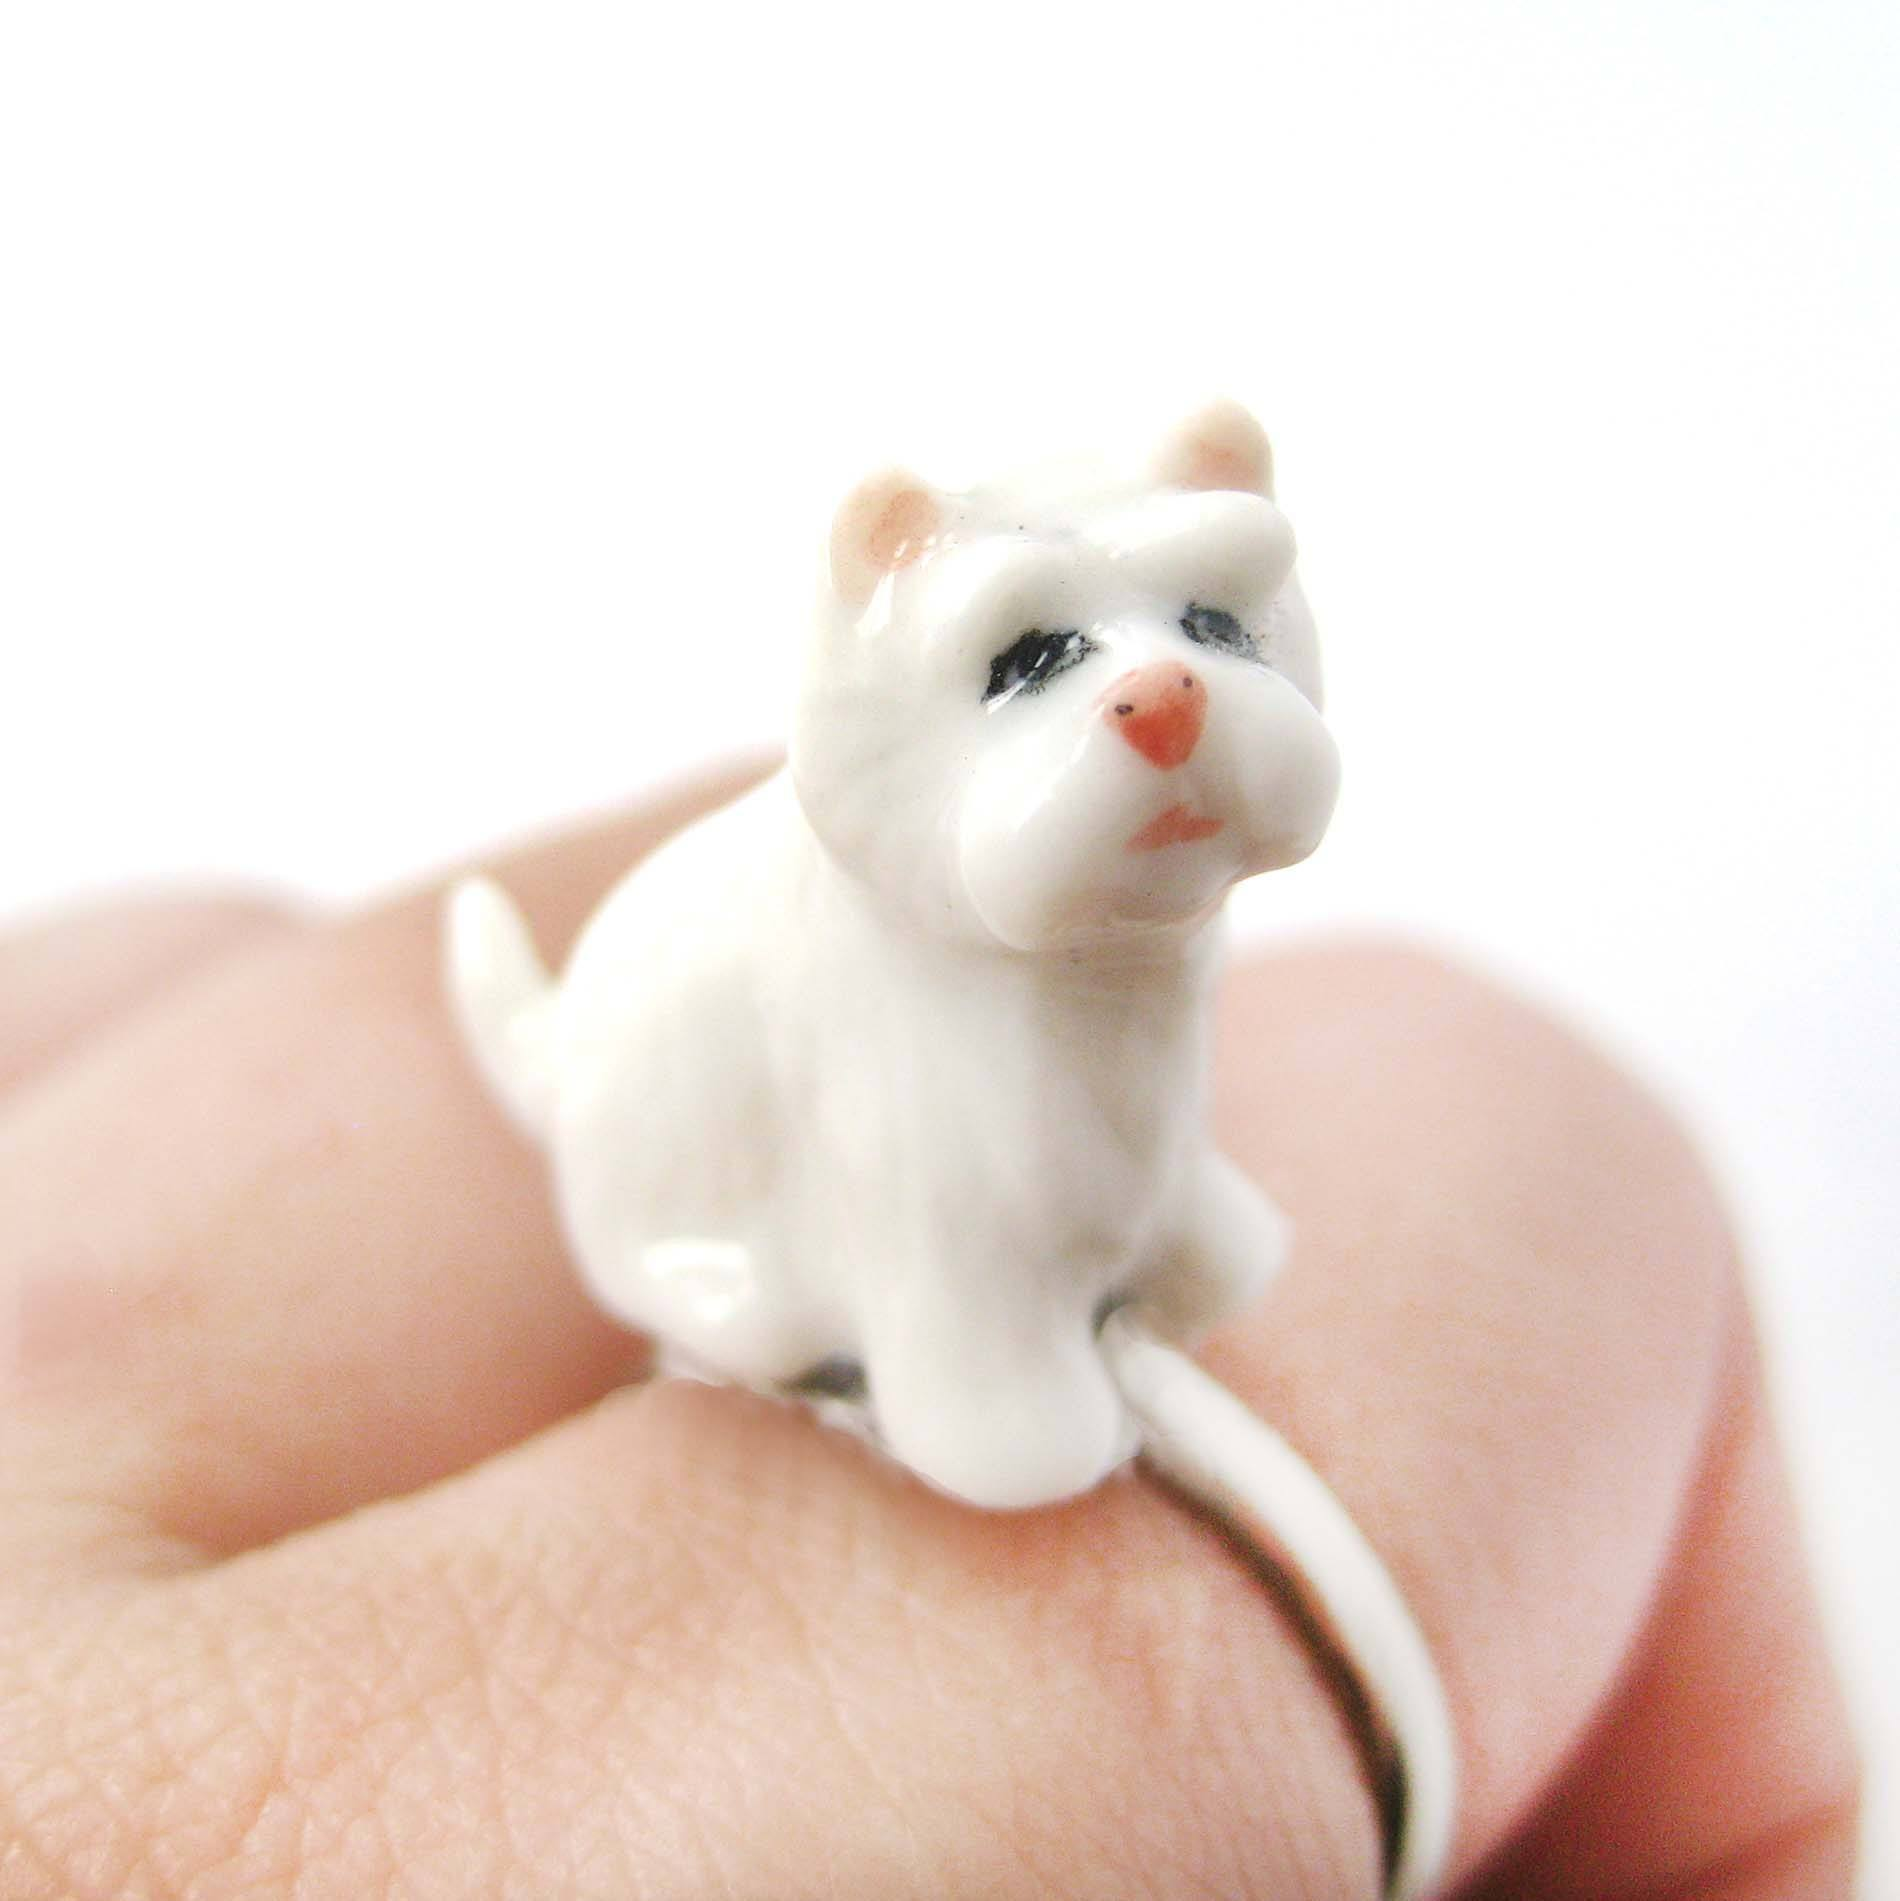 porcelain-ceramic-west-highland-white-terrier-puppy-dog-animal-adjustable-ring-handmade